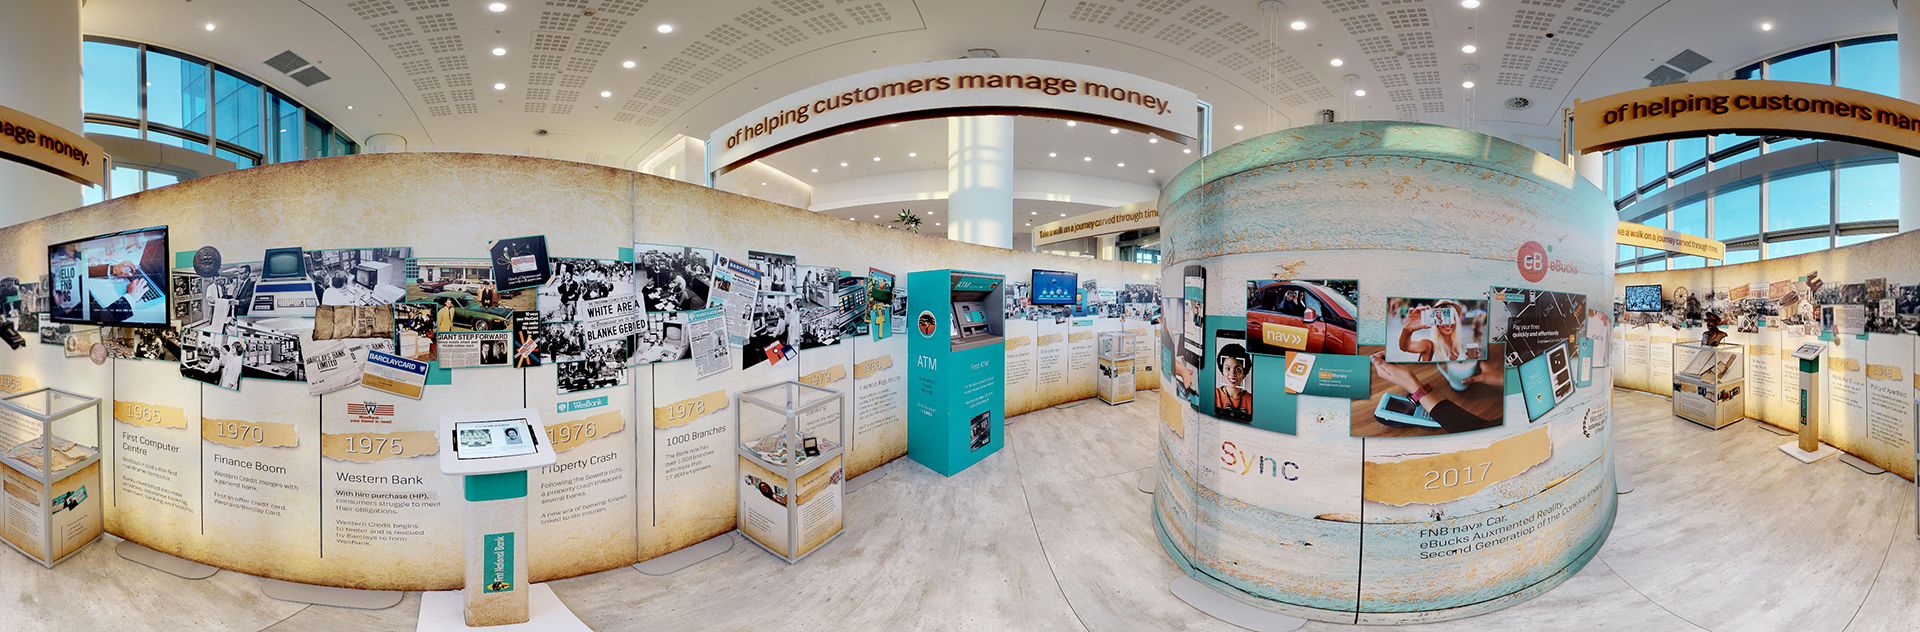 fnb-virtual-reality-experience